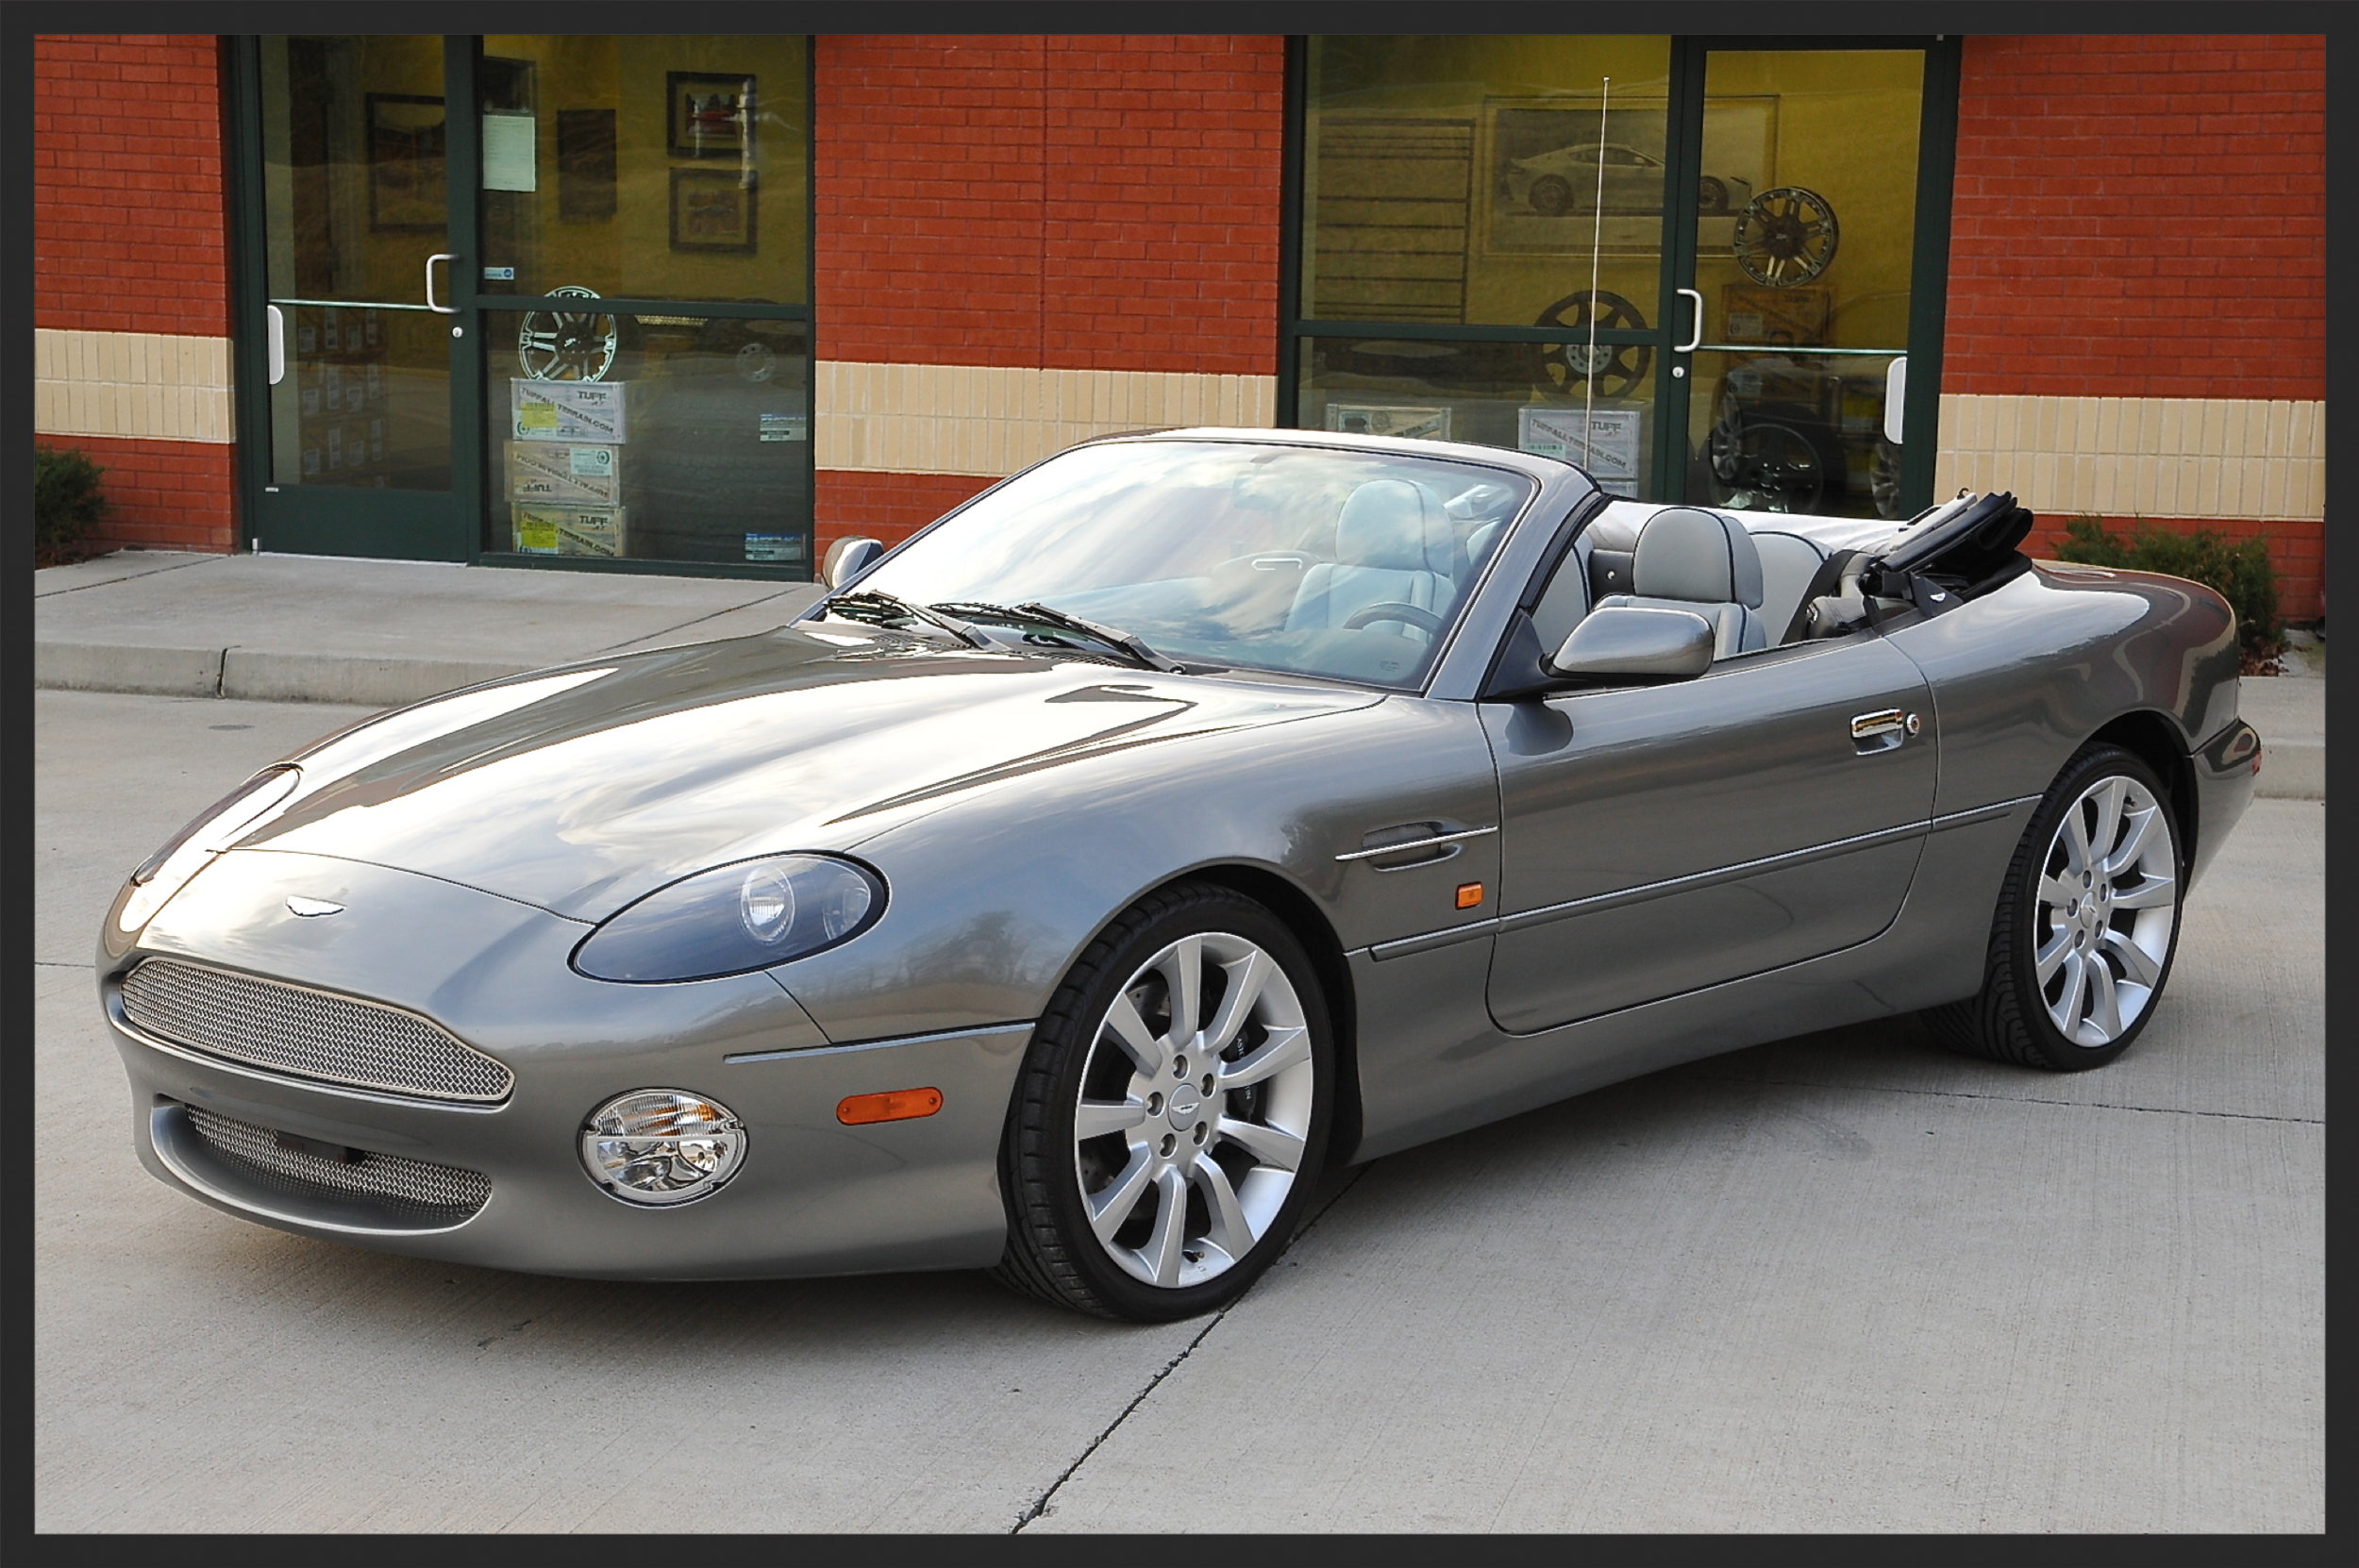 Aston Martin V12....ONLY 8K Original Miles...Stunning Car...Dealer Serviced with ALL Records..Just Received a $4000 Service